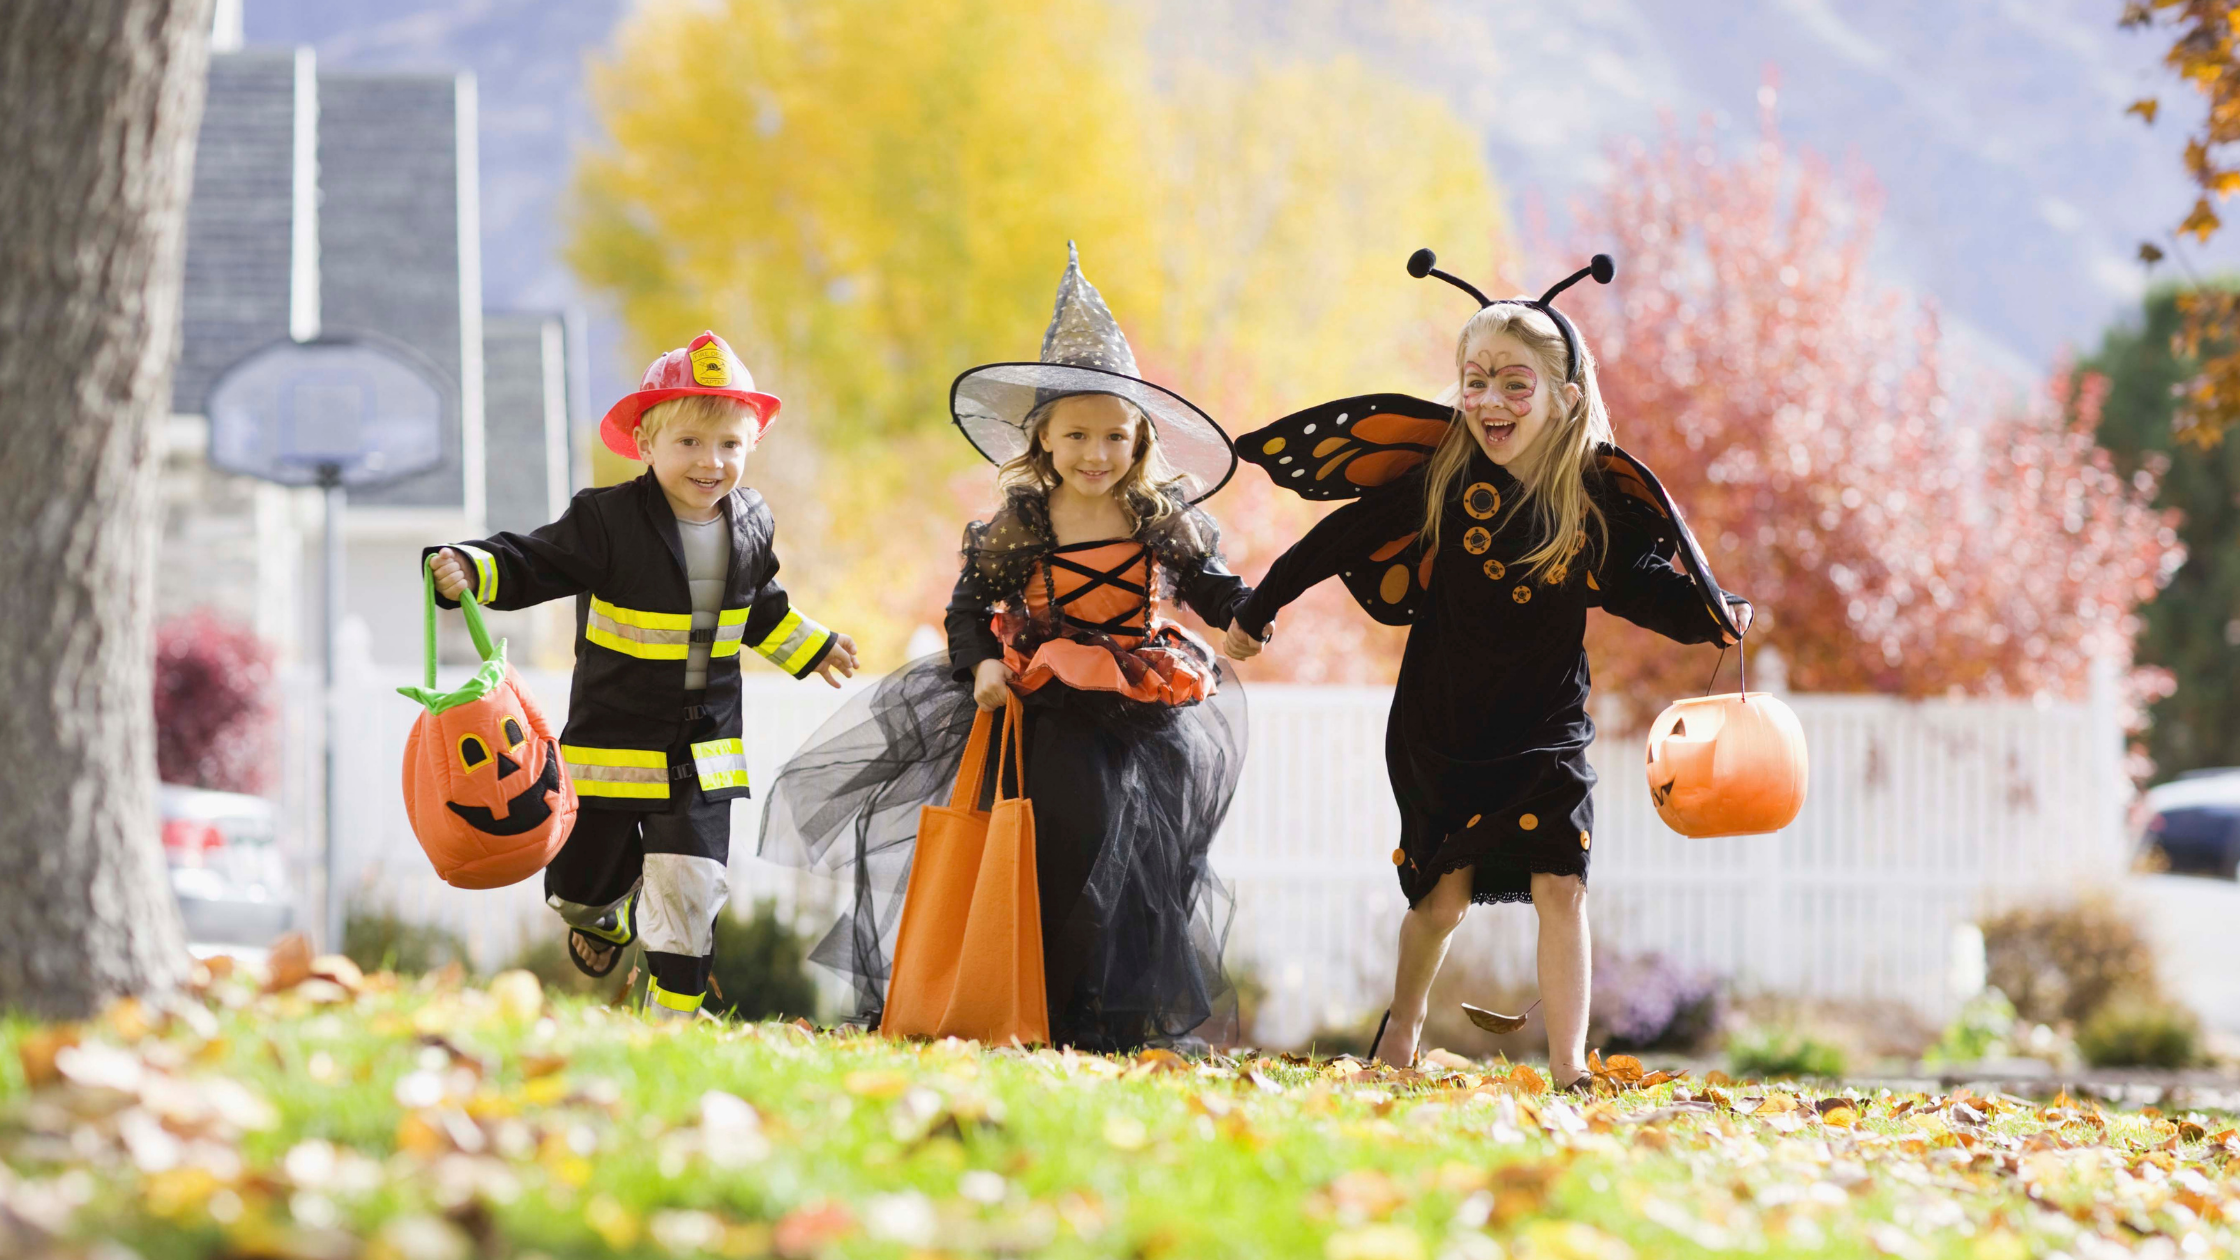 Children in Halloween costumes are on their way to a fall fundraising event.